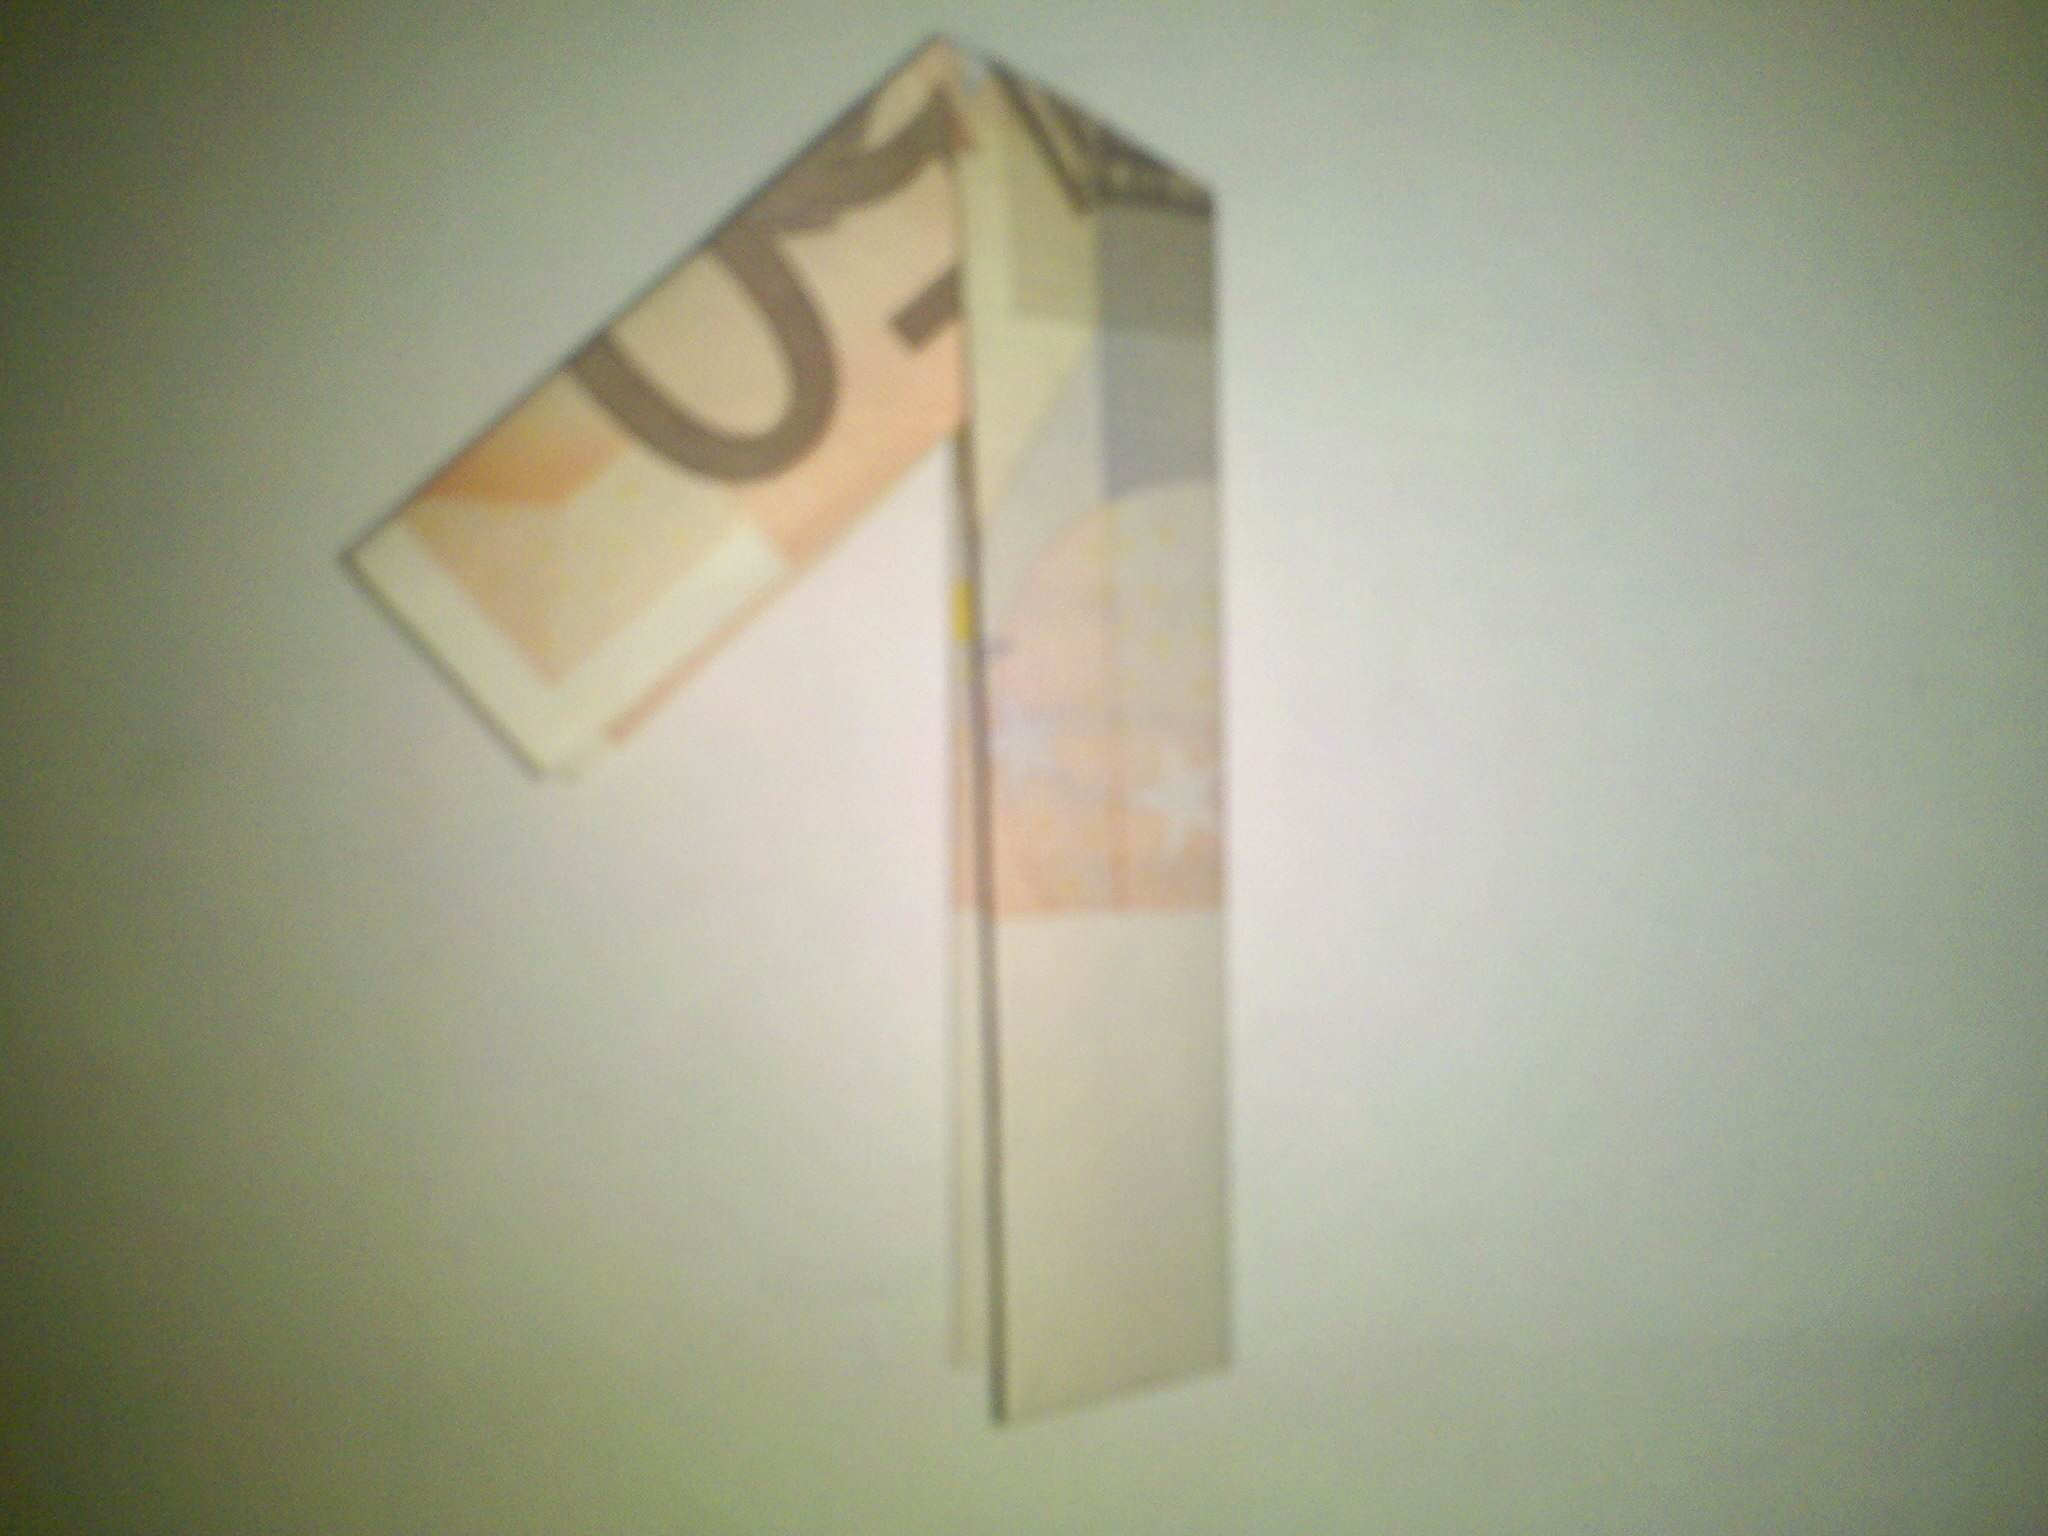 Origami: Number 1 folded from a banknote